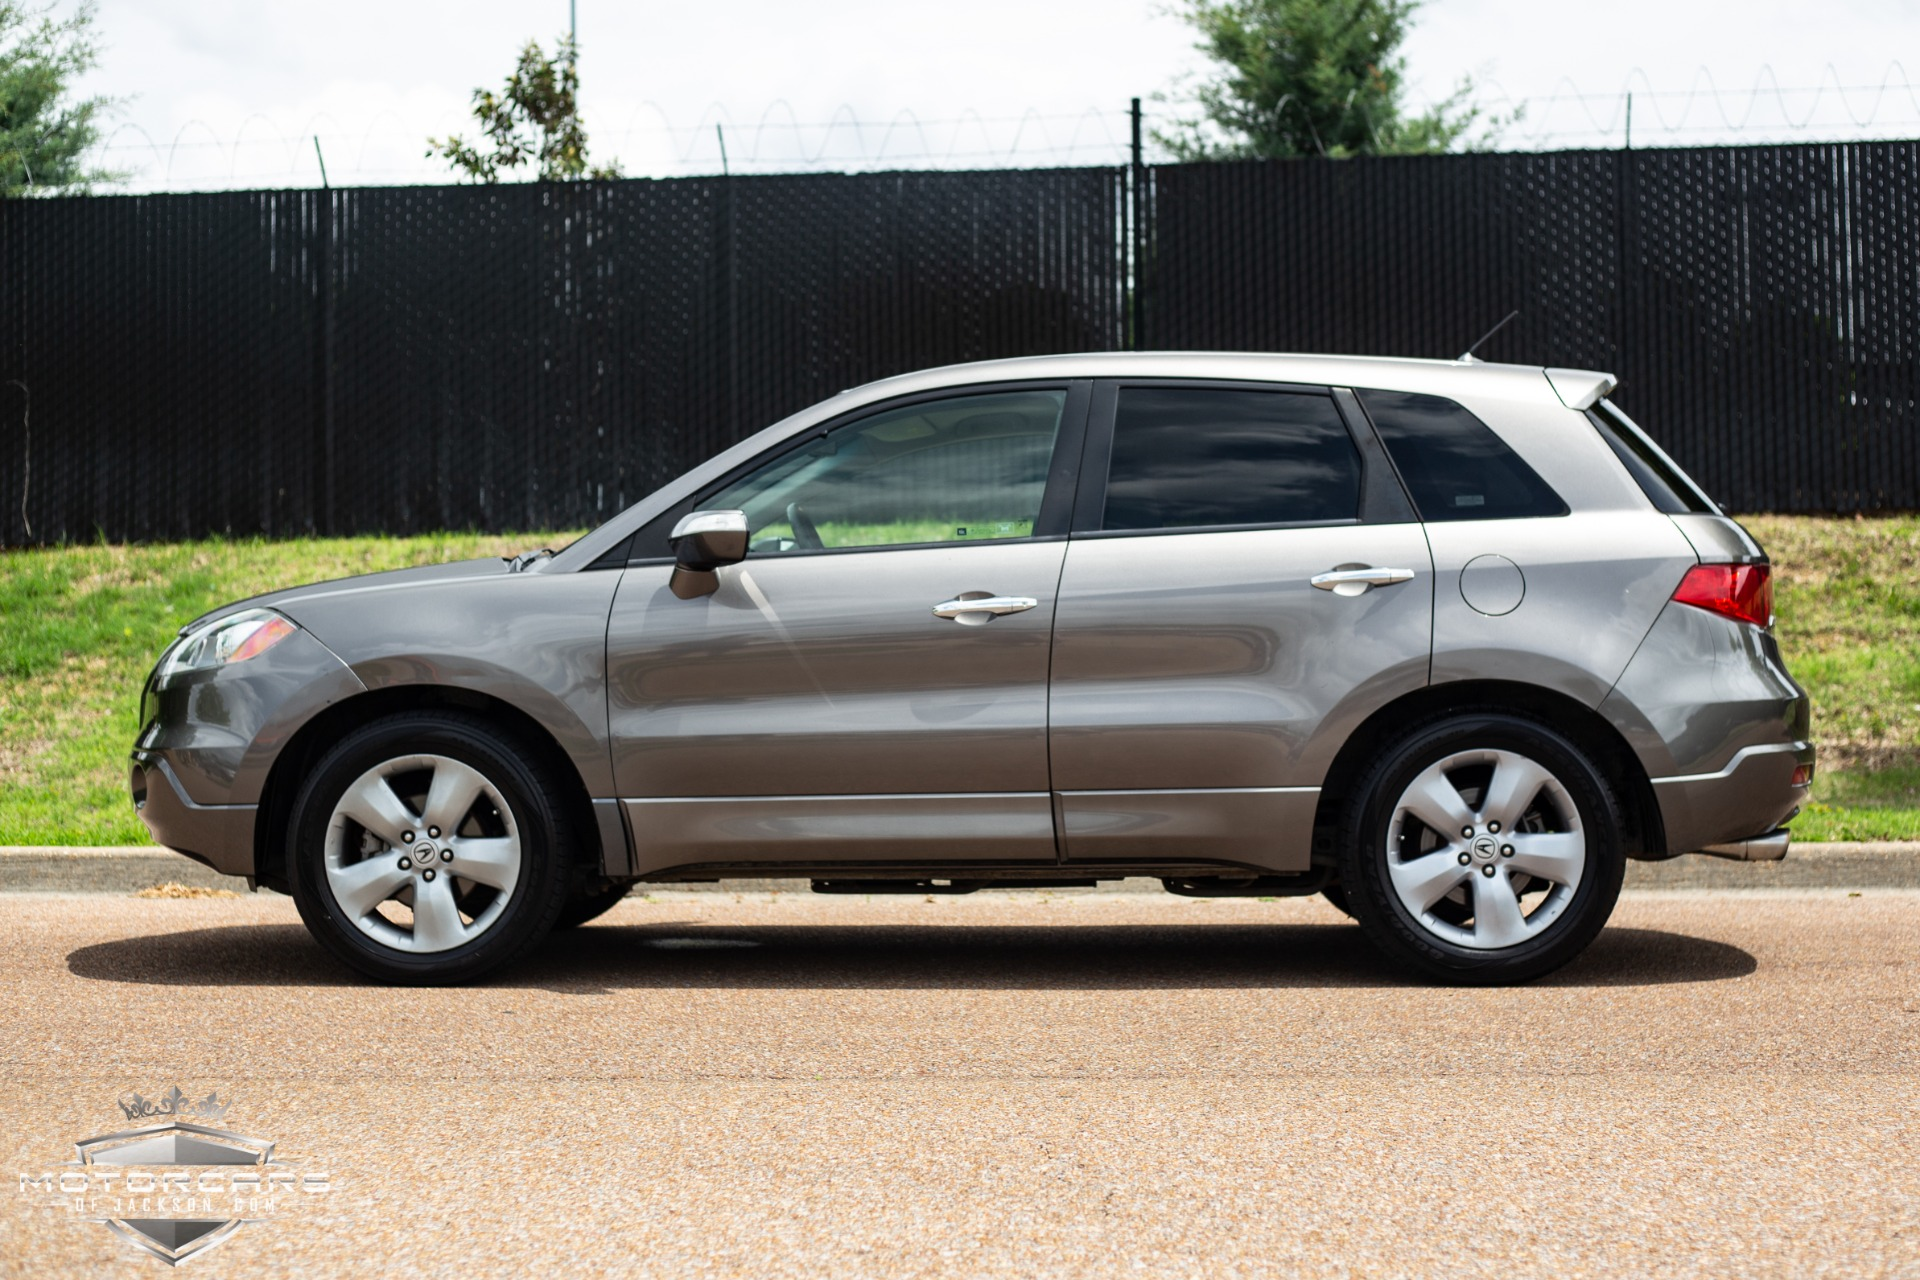 Acura Jackson Ms >> 2008 Acura Rdx Tech Pkg Stock 8a016470 For Sale Near Jackson Ms